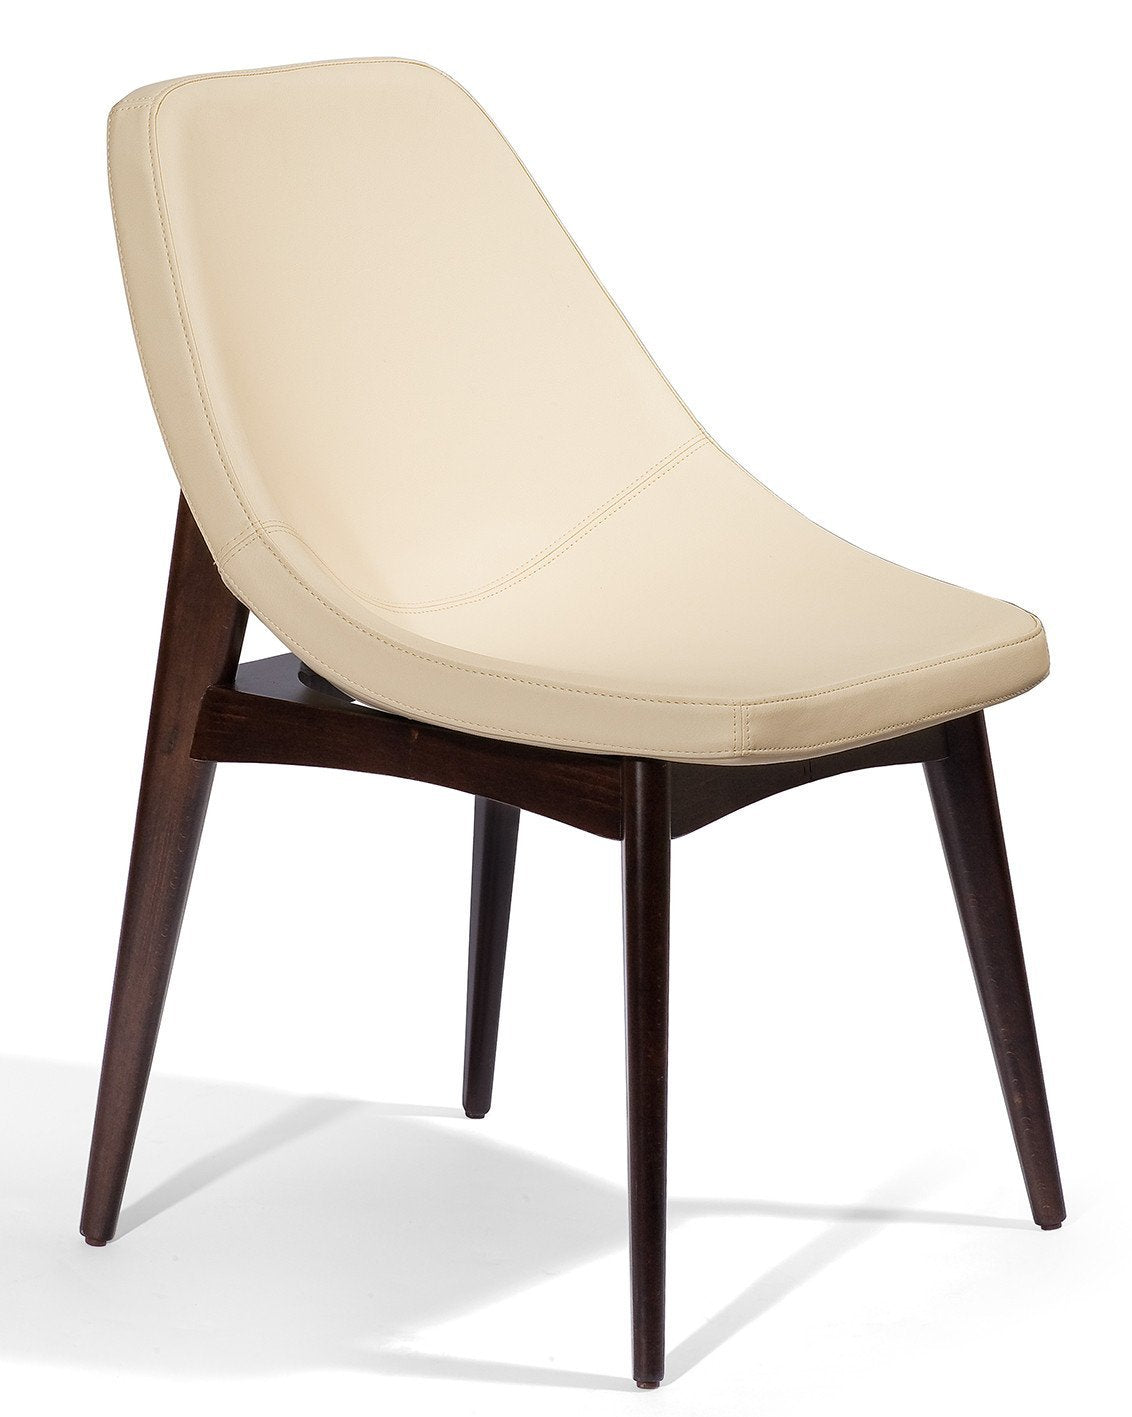 Simo C776 Side Chair-EsseTi Design-Contract Furniture Store